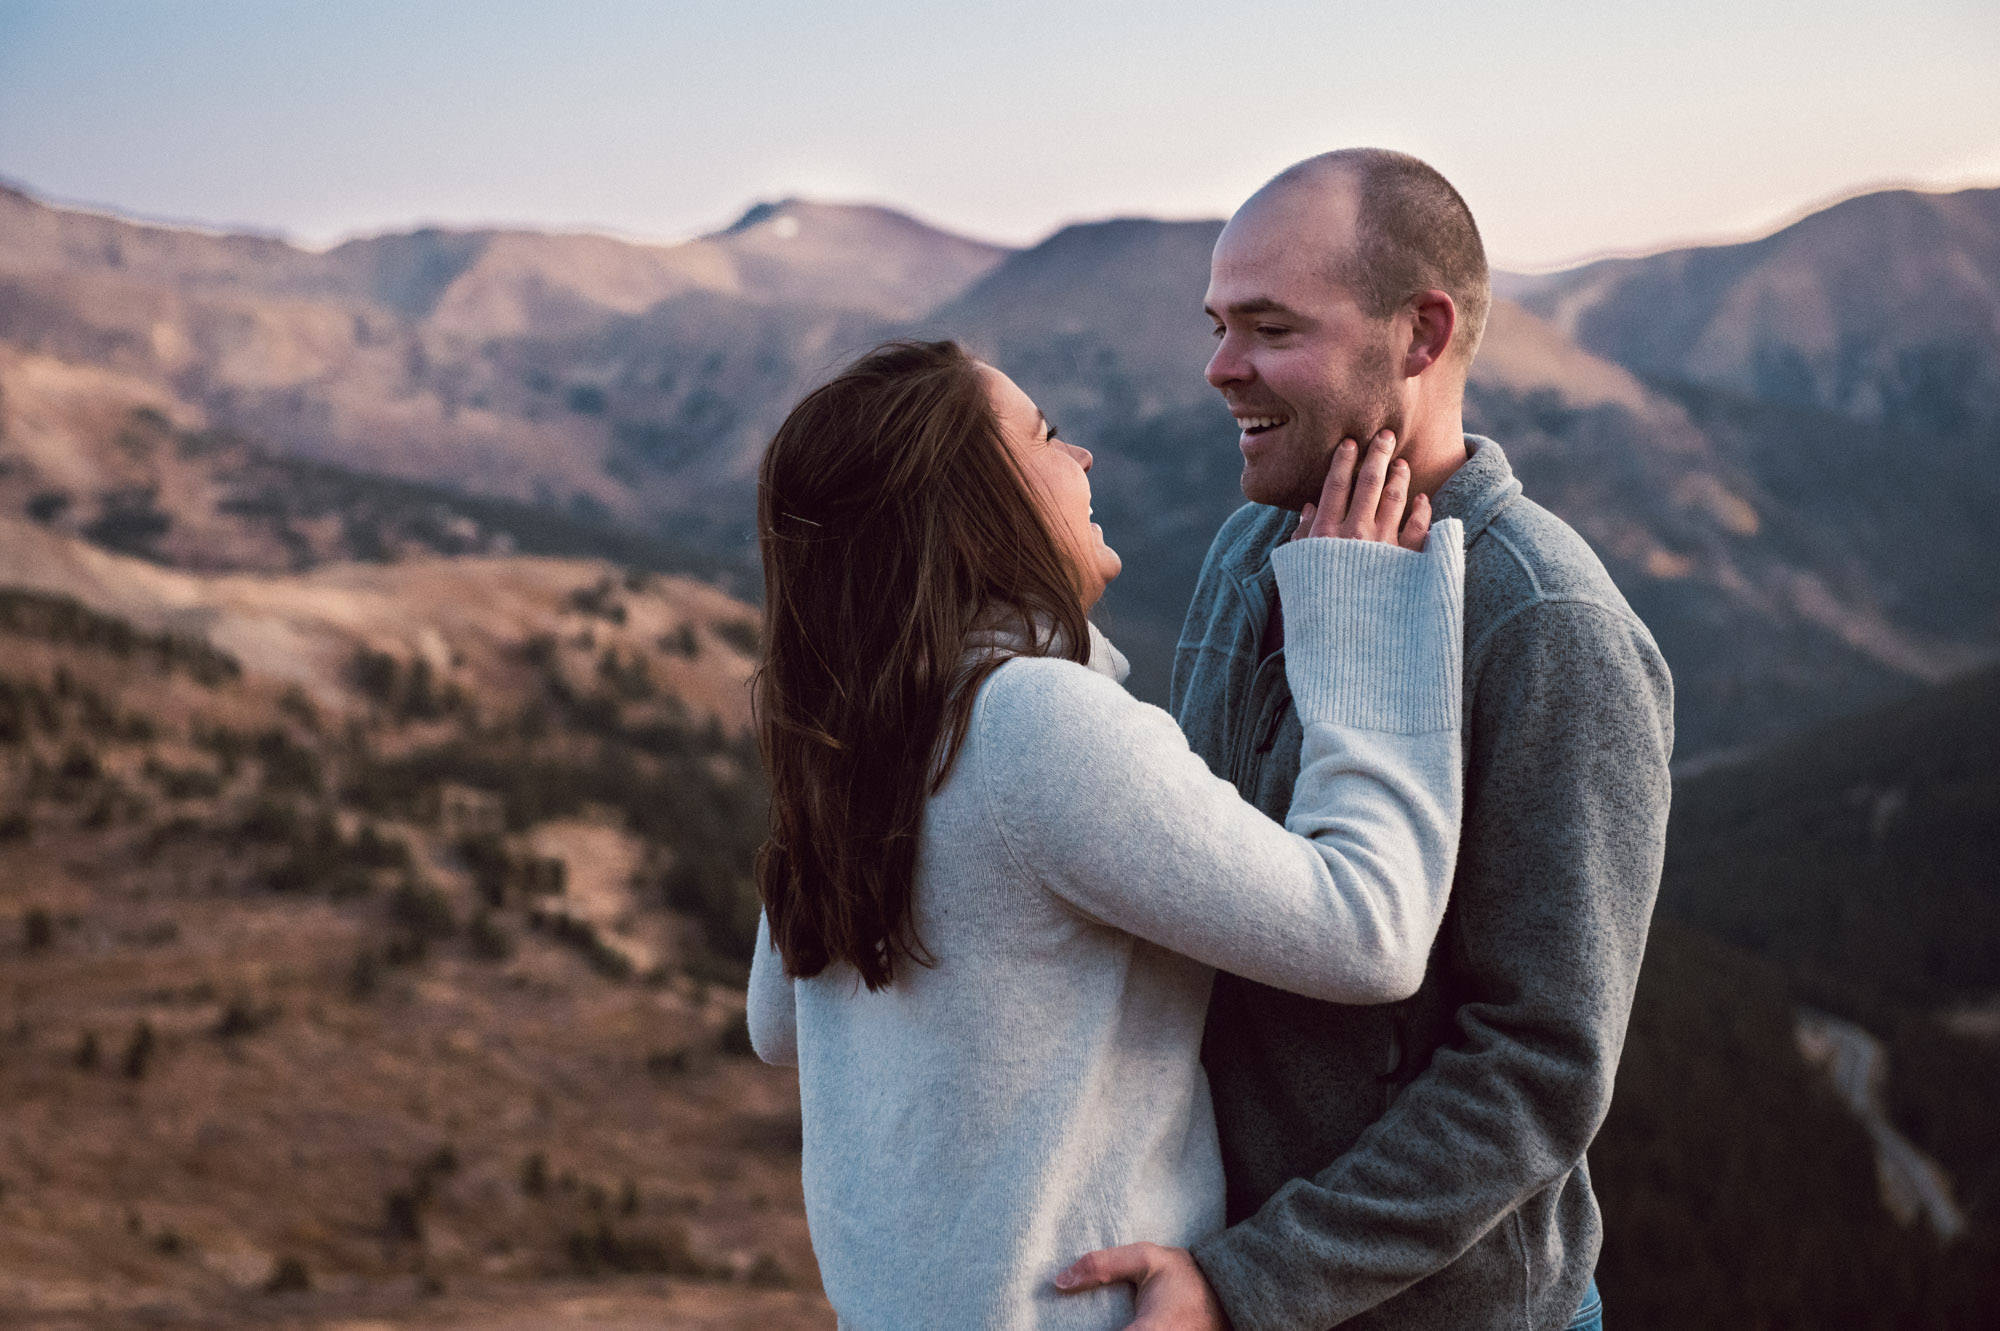 Mountaintop Engagement Photoshoot